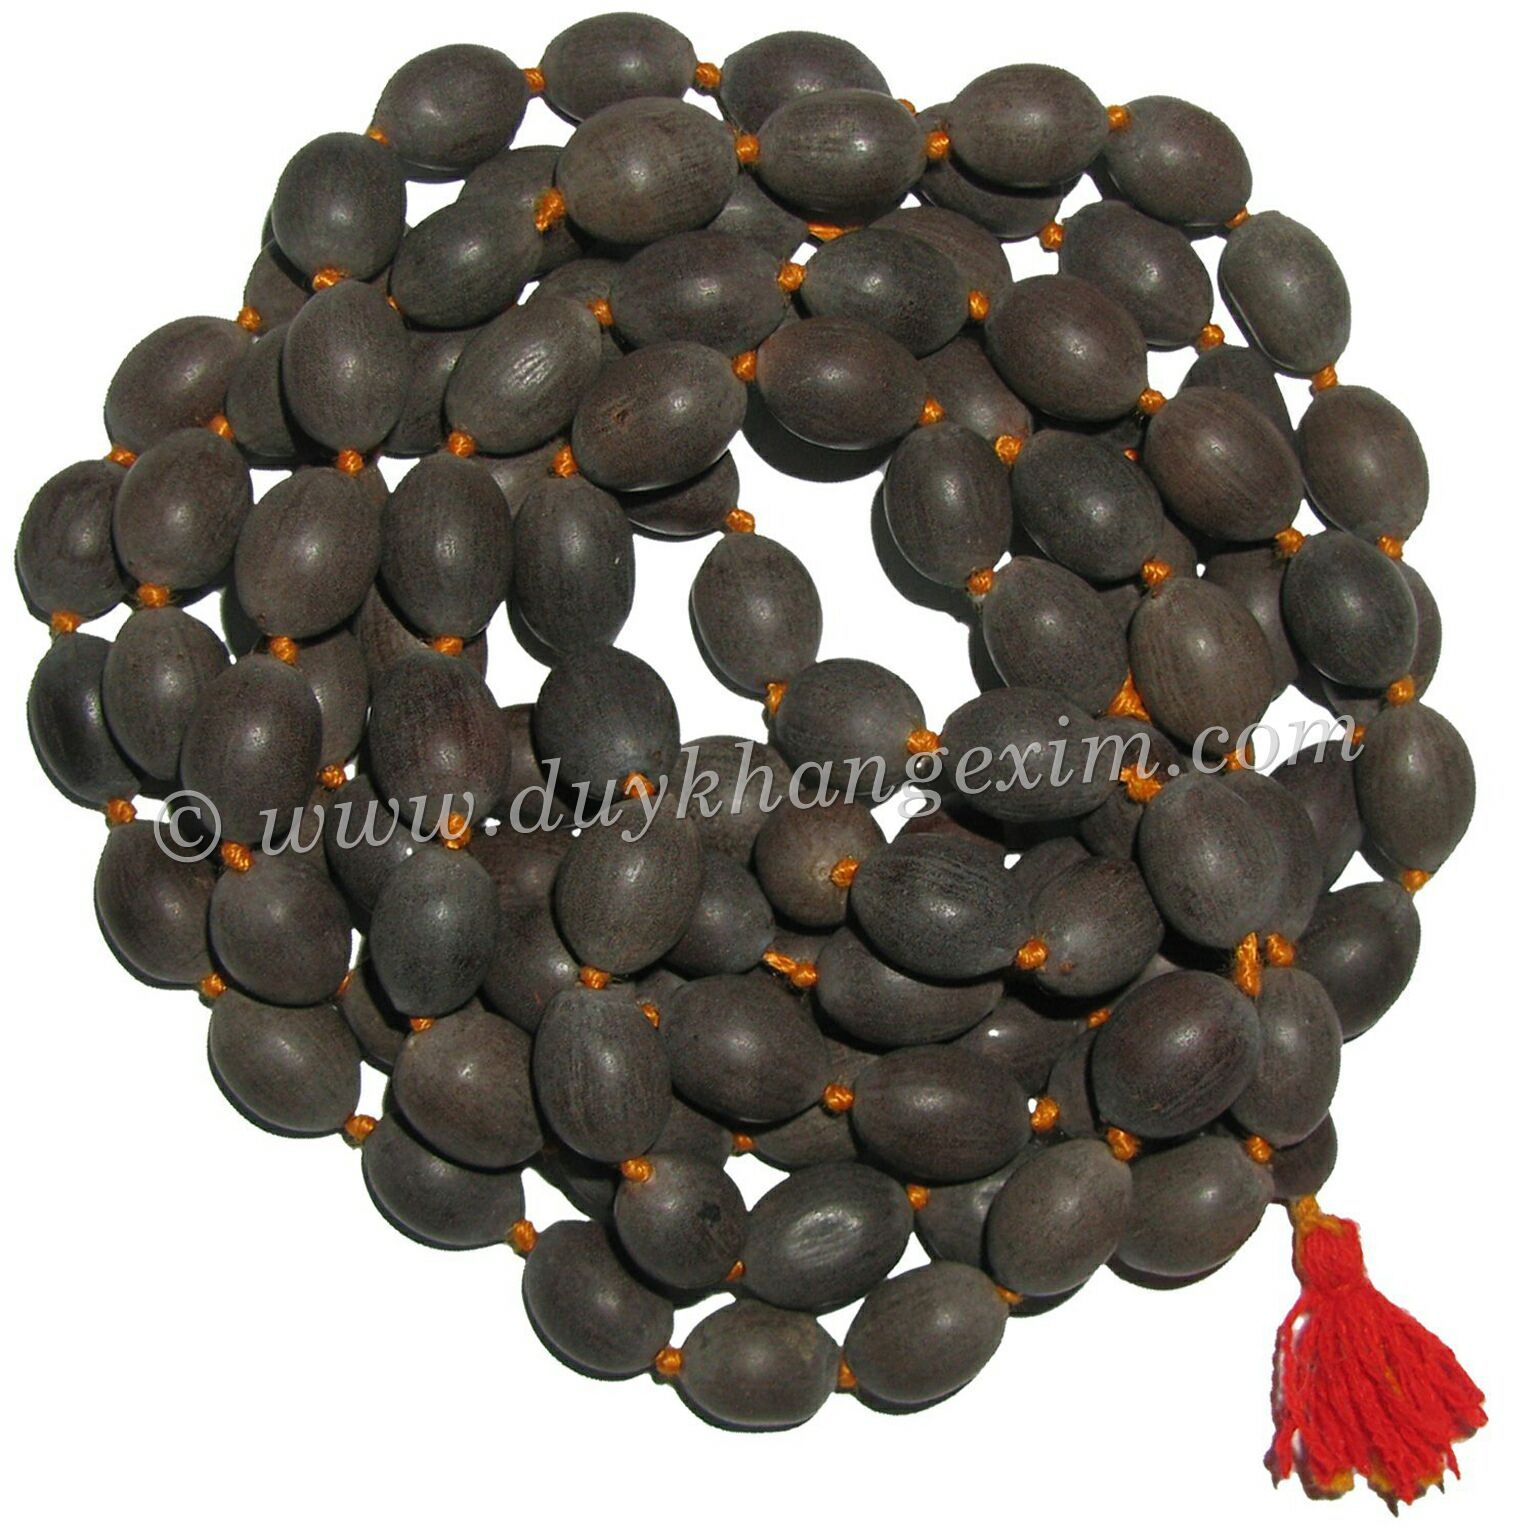 OFFER BLACK LOTUS SEEDS FROM THE BIGGEST MANUFACTURE IN VIETNAM